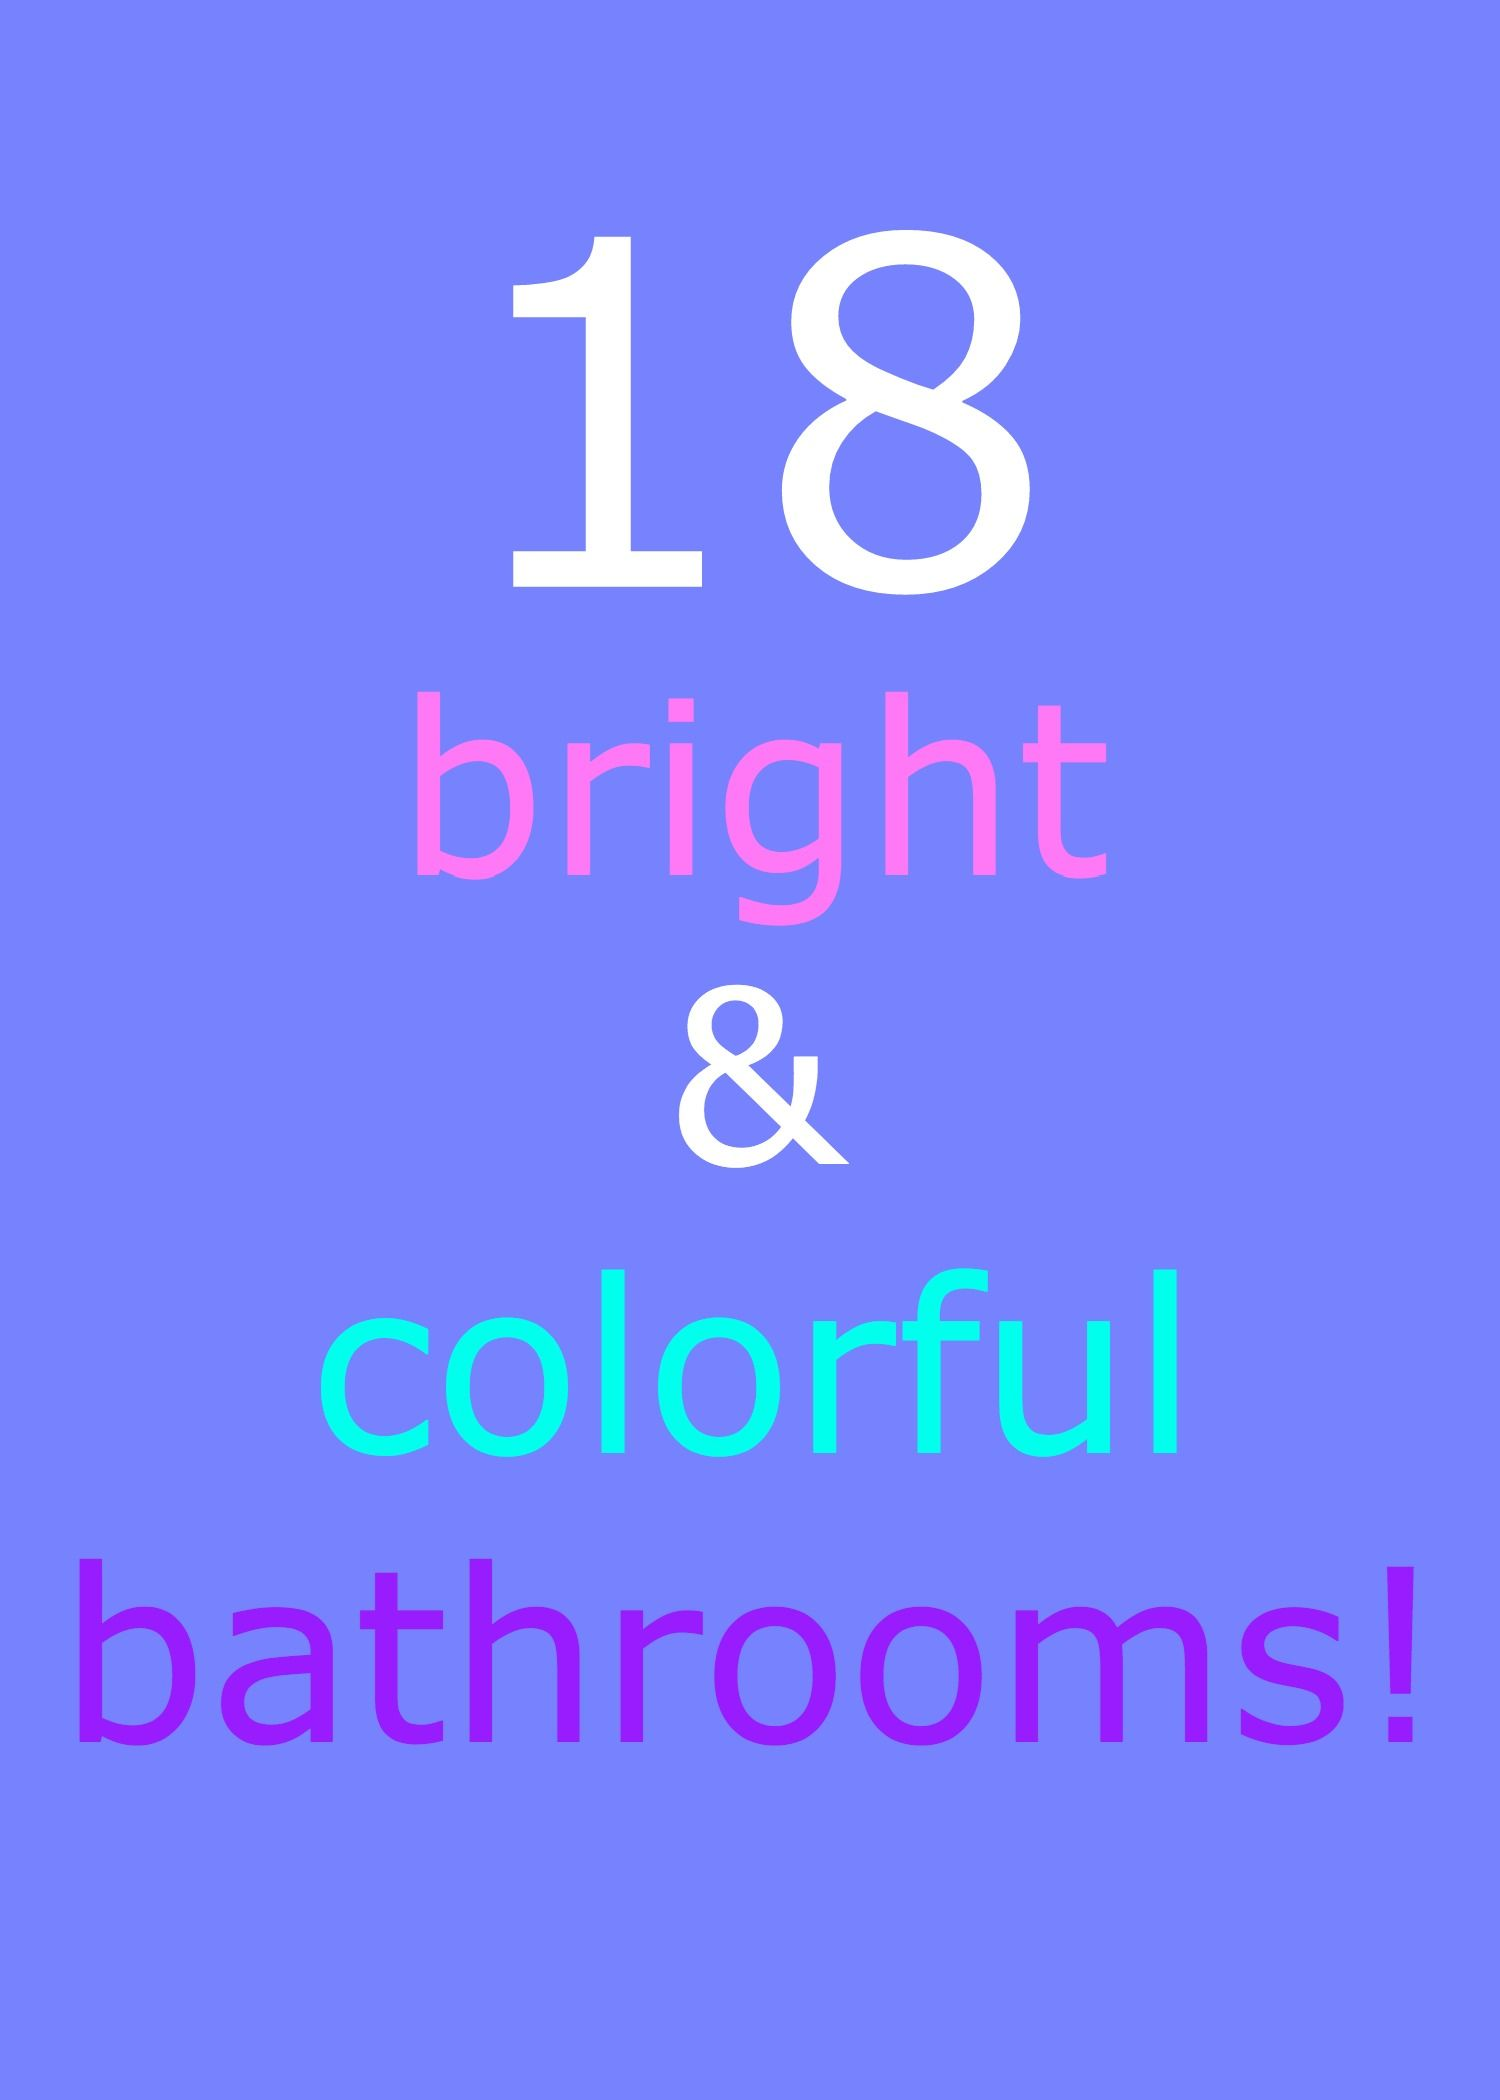 Ah! This is exactly what my bathroom needs right now--just a little color to liven it up :)